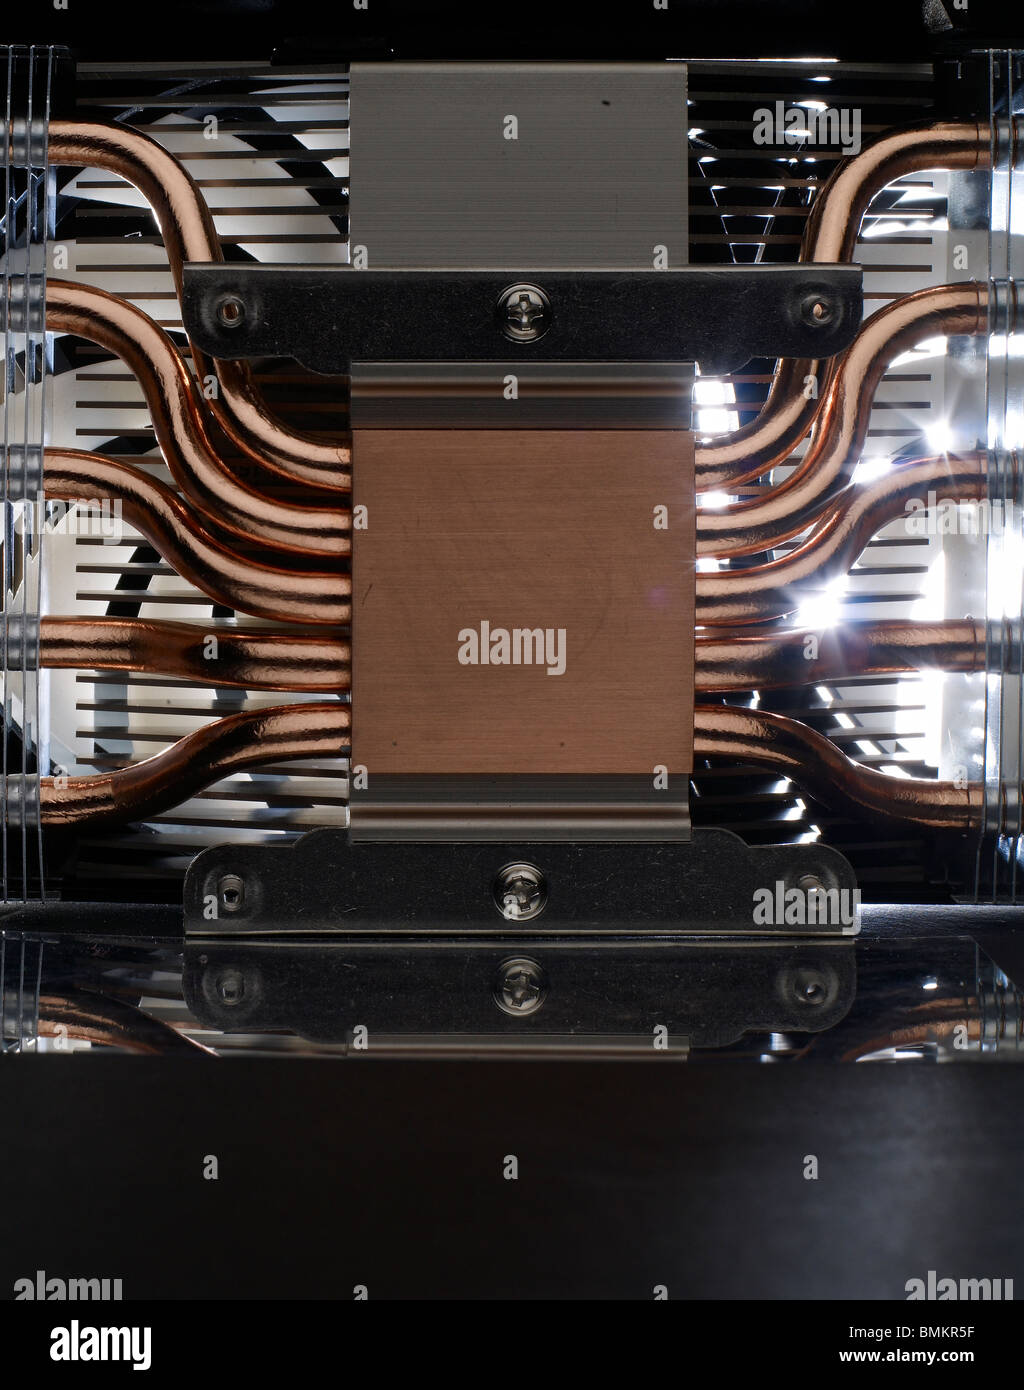 Copper metal heat sink and fans of liquid cooled computer card - Stock Image